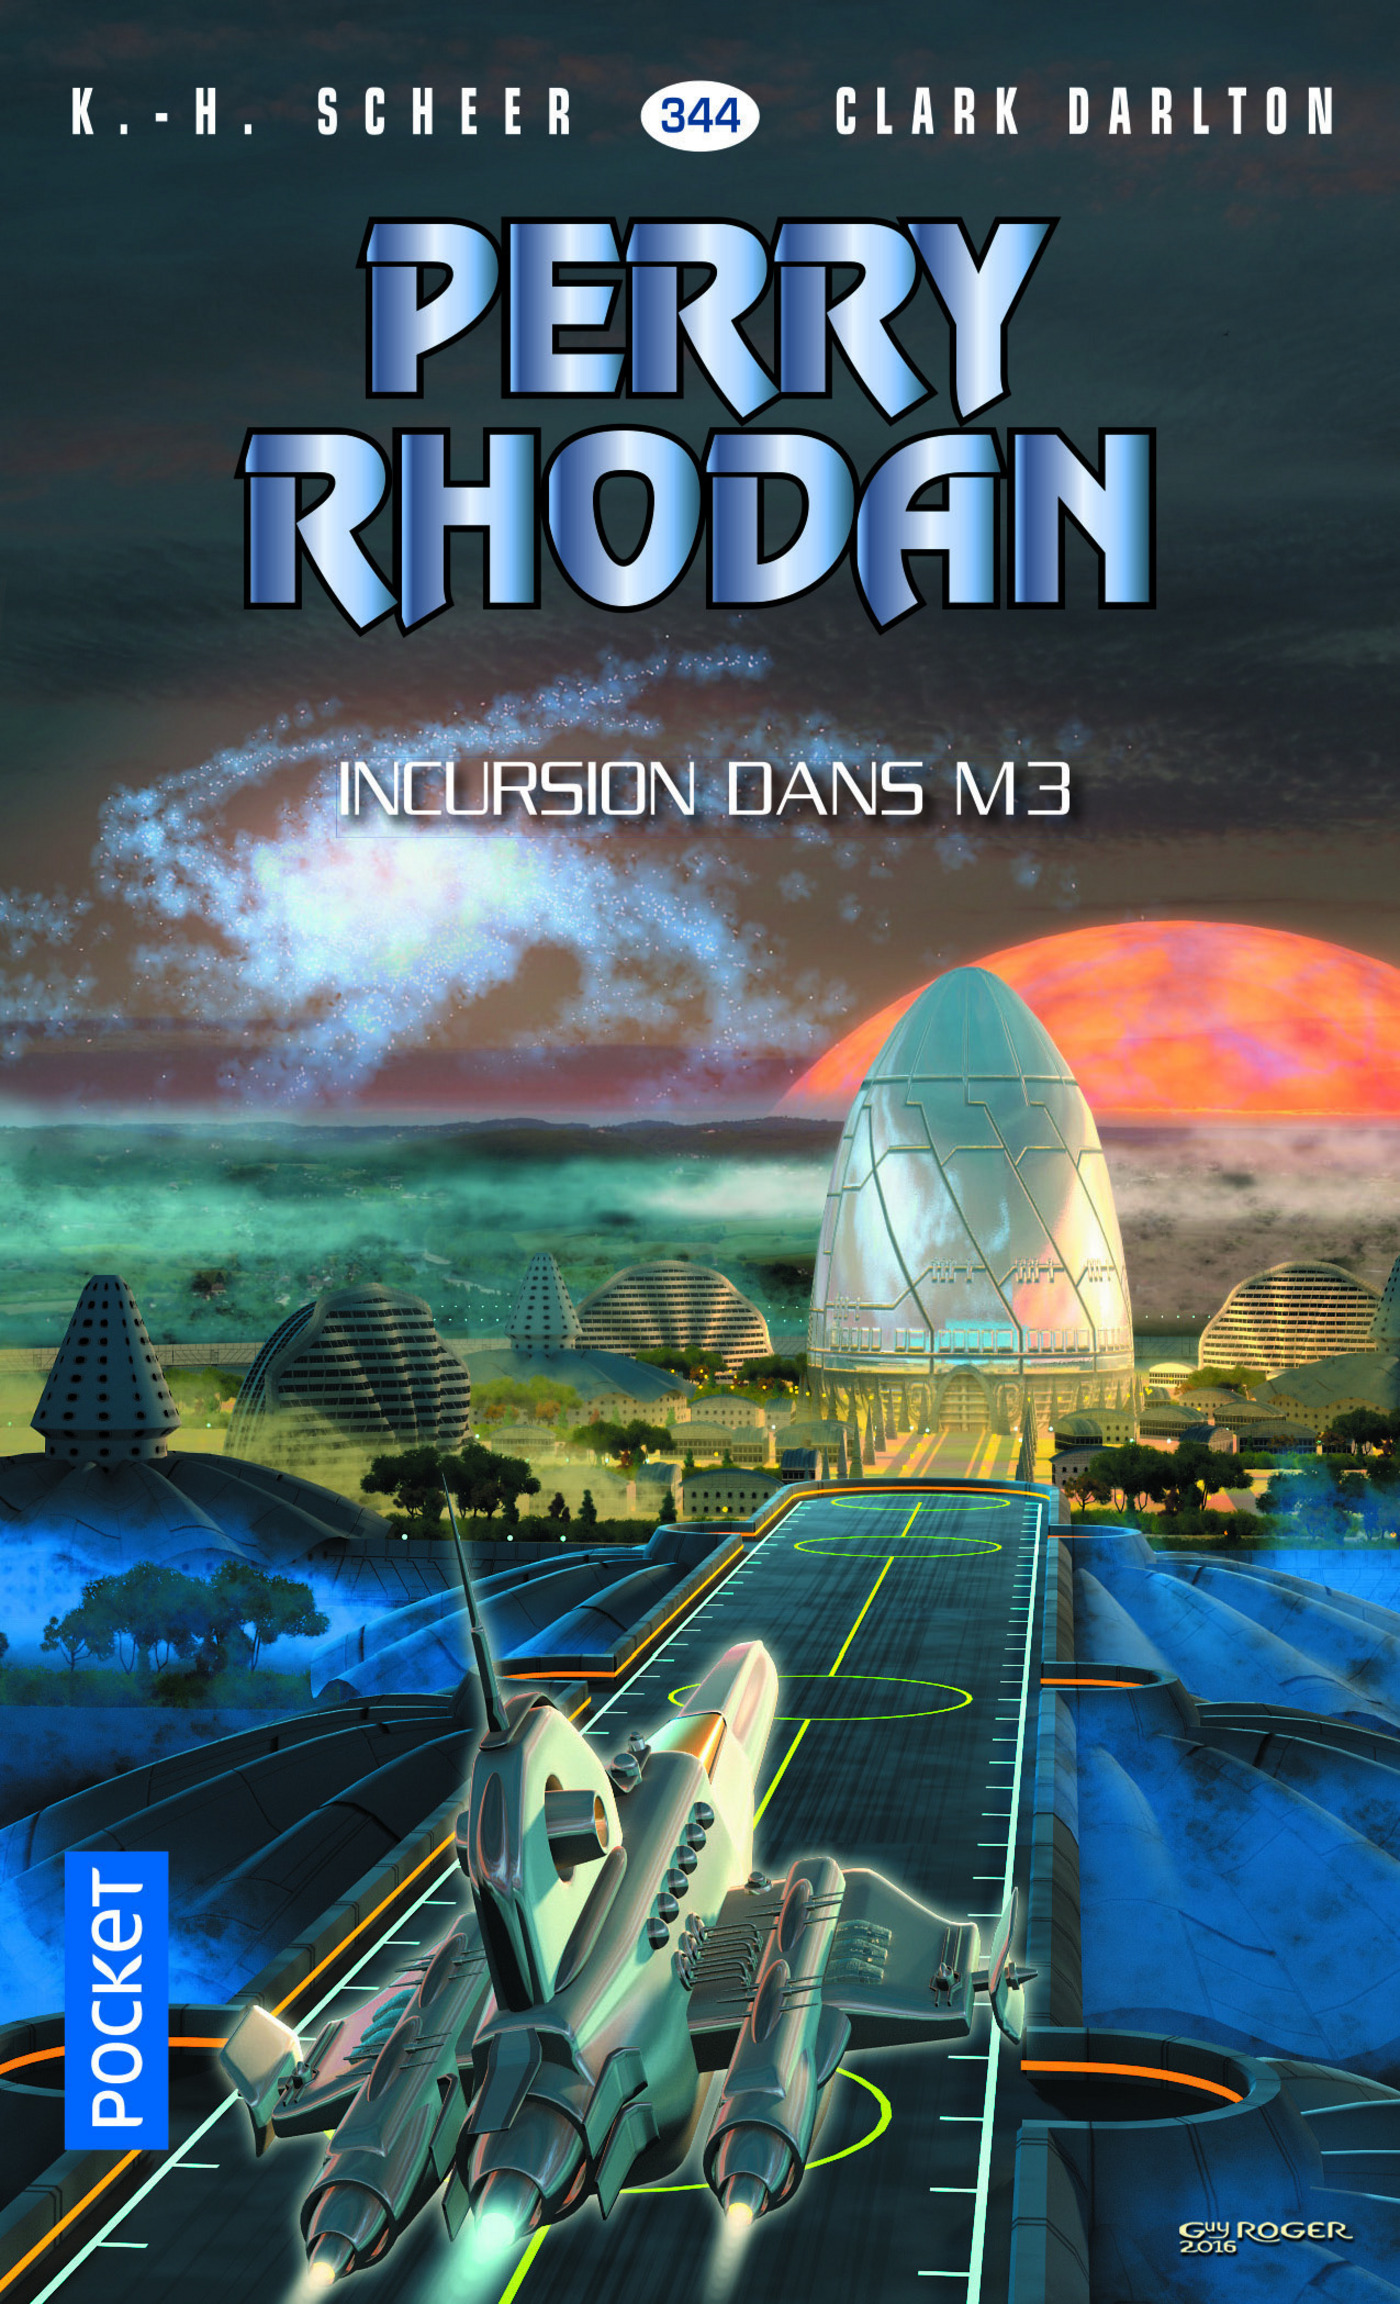 Perry Rhodan 344 : Incursion dans M3